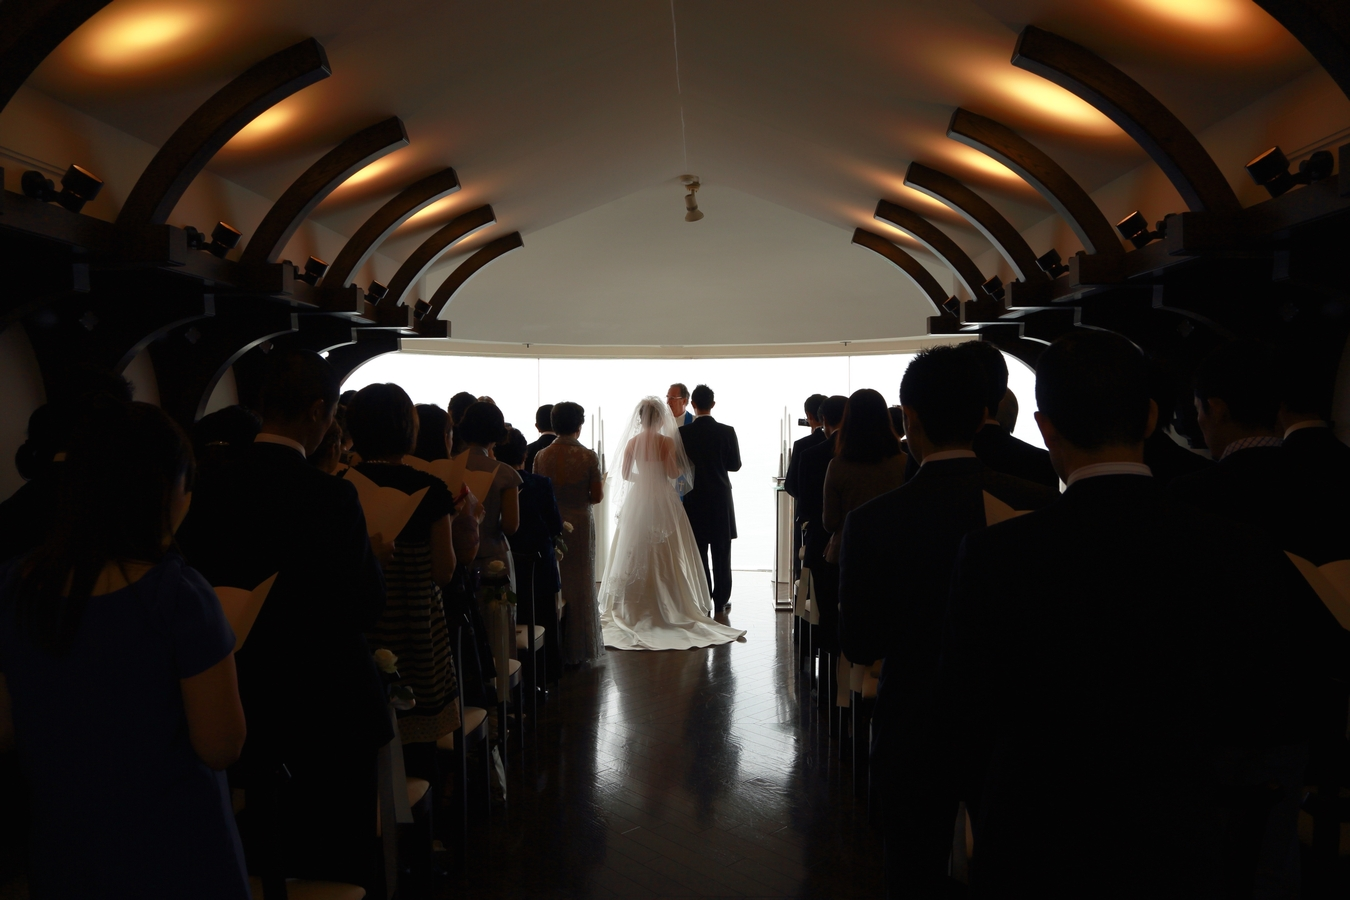 Online Ordained Minister Performing Wedding (Photo)